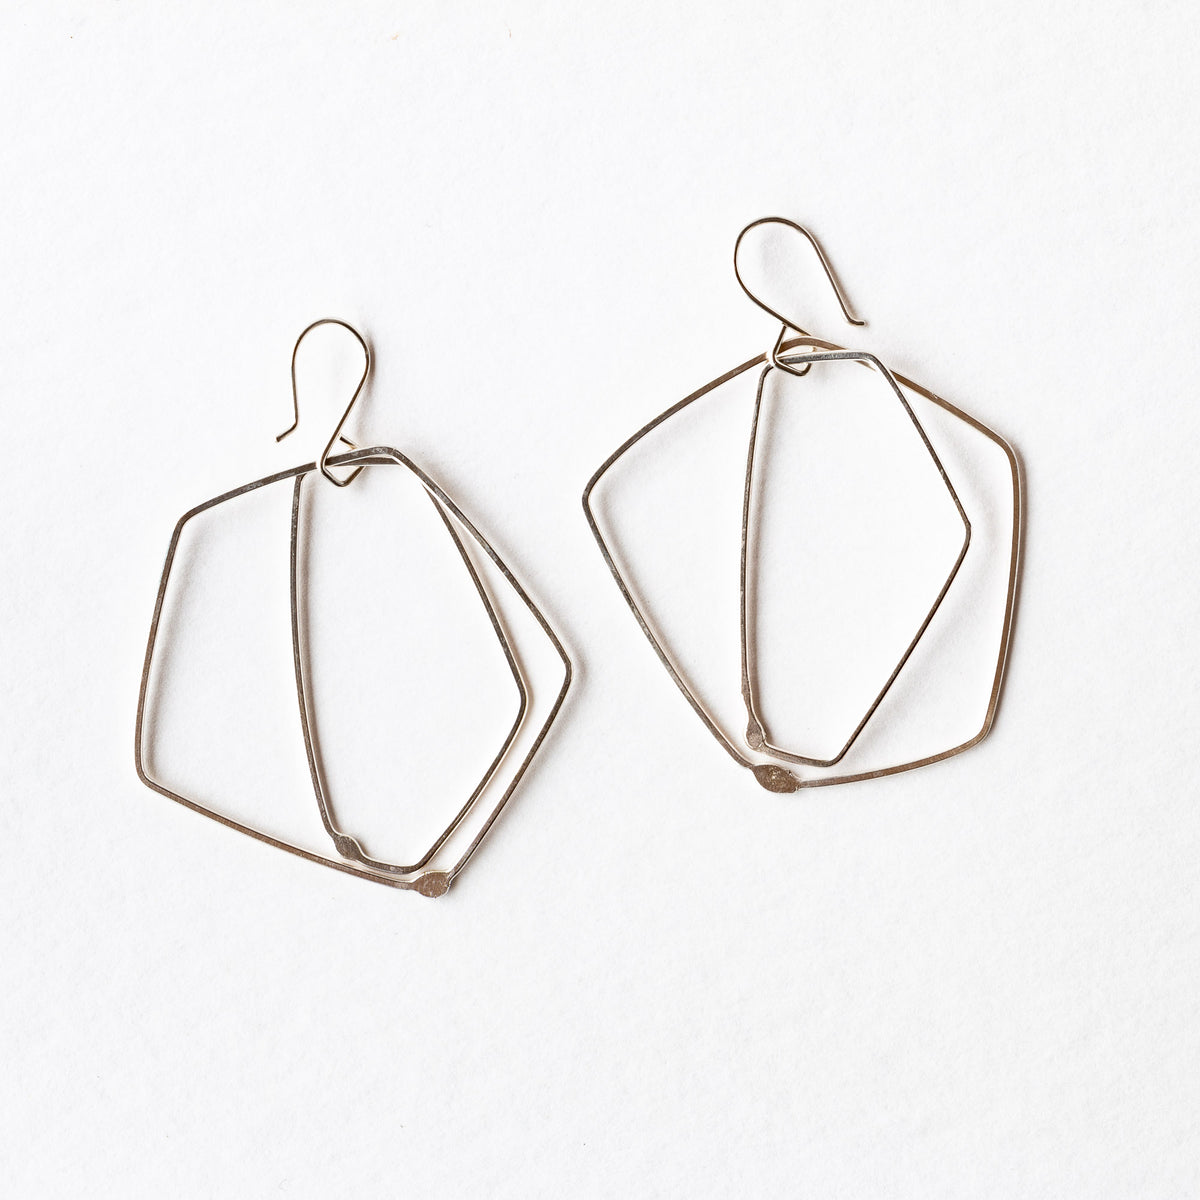 Top View - Sterling Silver Minimalist Earrings - ES02 - Sold by Chic & Basta